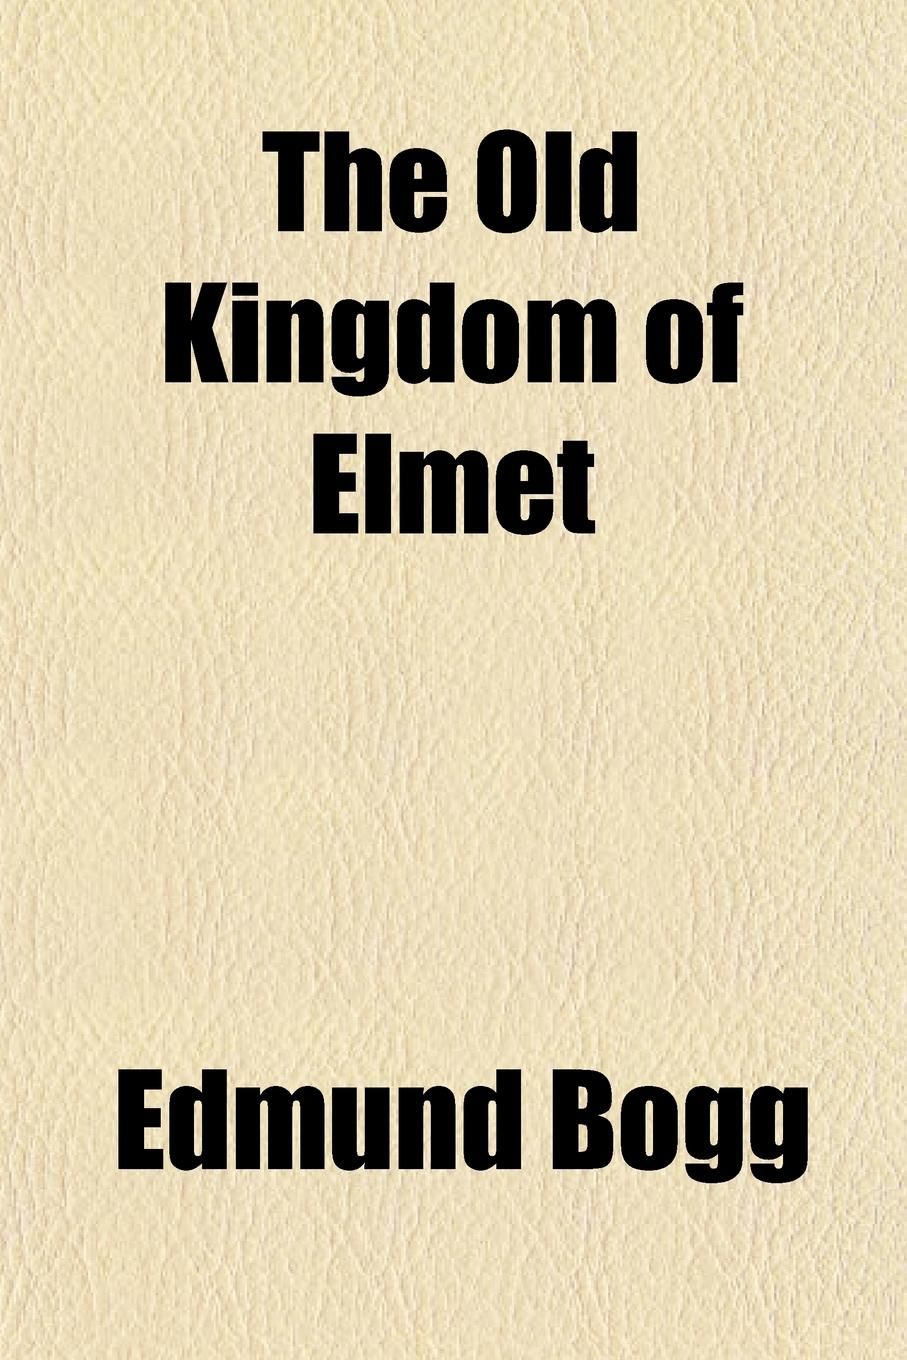 Edmund Bogg The Old Kingdom of Elmet free shipping kayipht cm400ha1 24h can directly buy or contact the seller